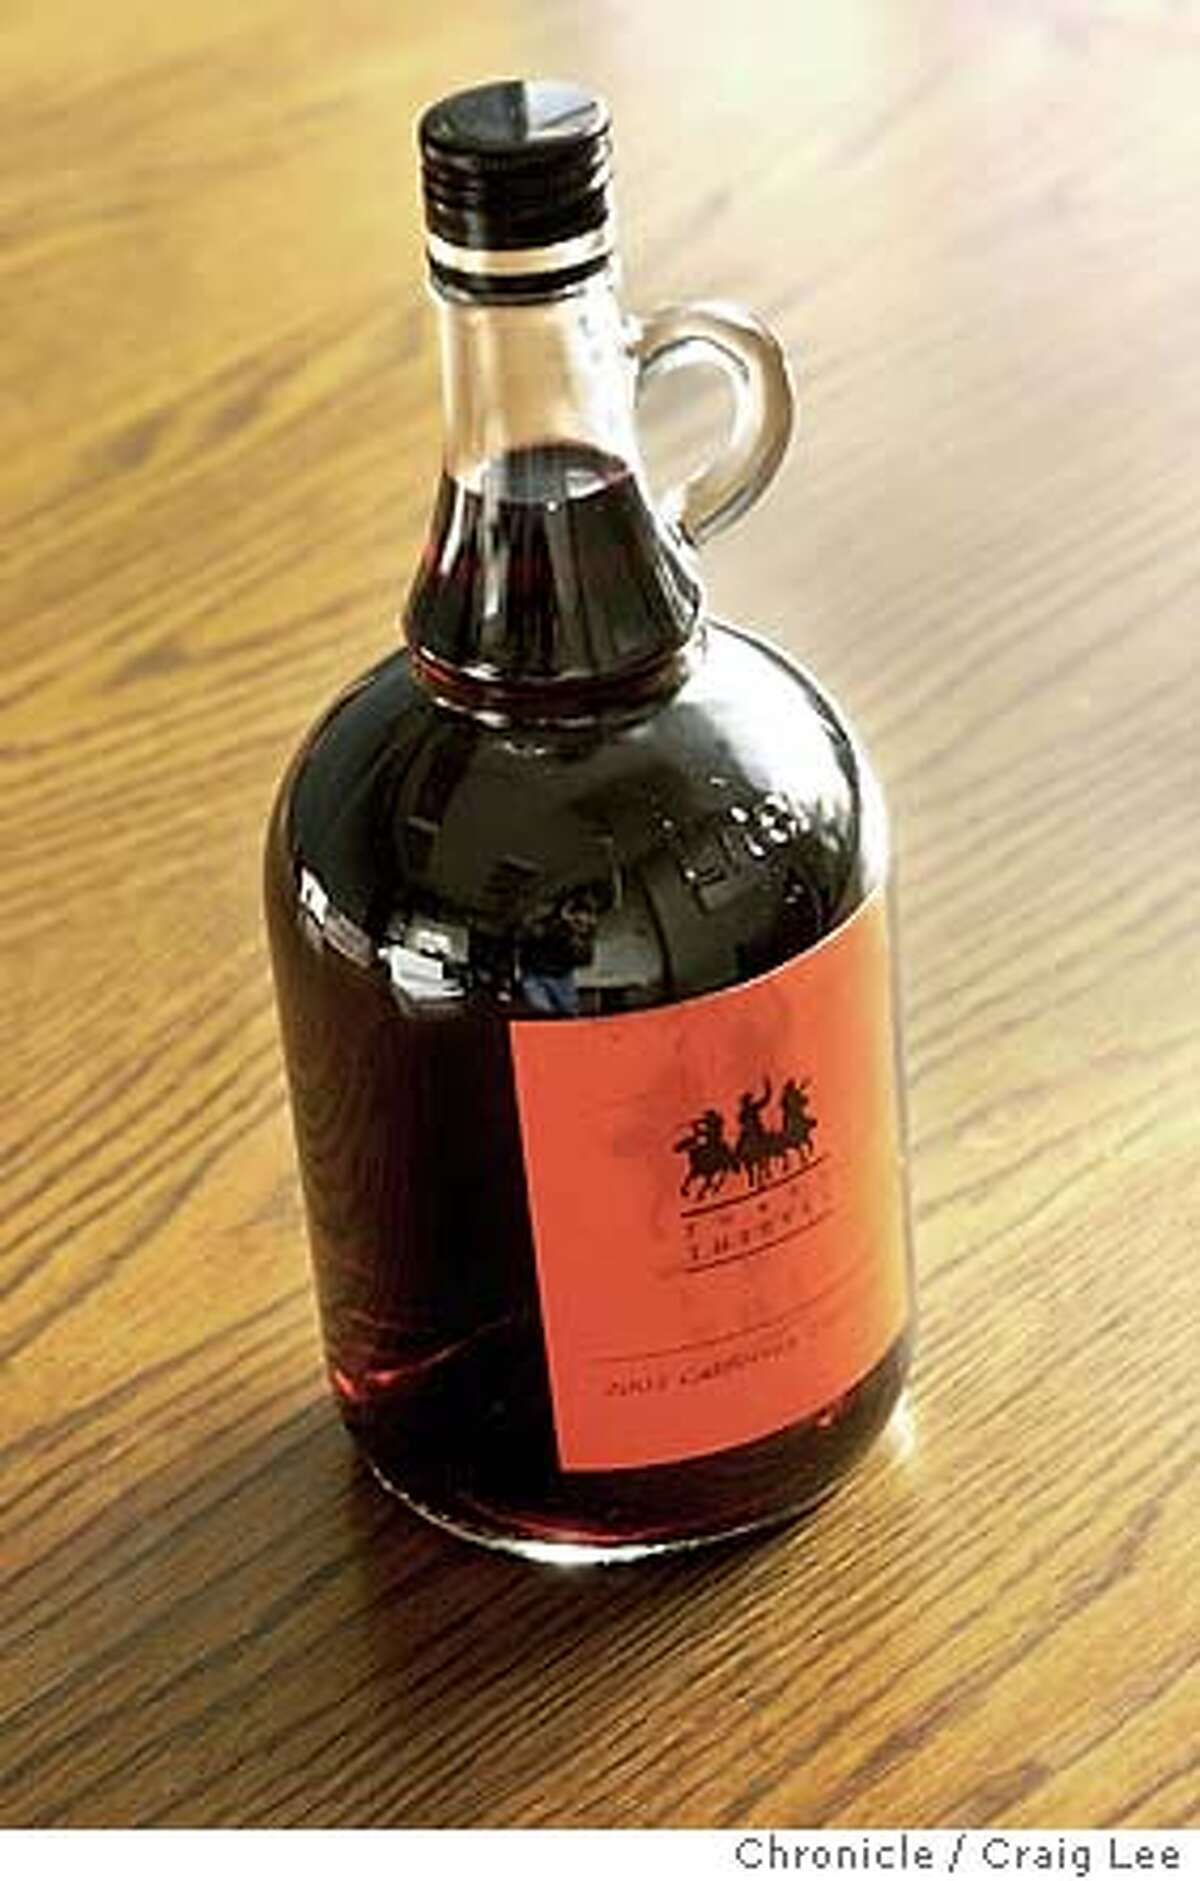 Photo of 2002 Three Thieves California Zinfandel. It come in a 1-liter jug and is sealed with a screw cap. Event on 12/11/03 in San Francisco. CRAIG LEE / The Chronicle